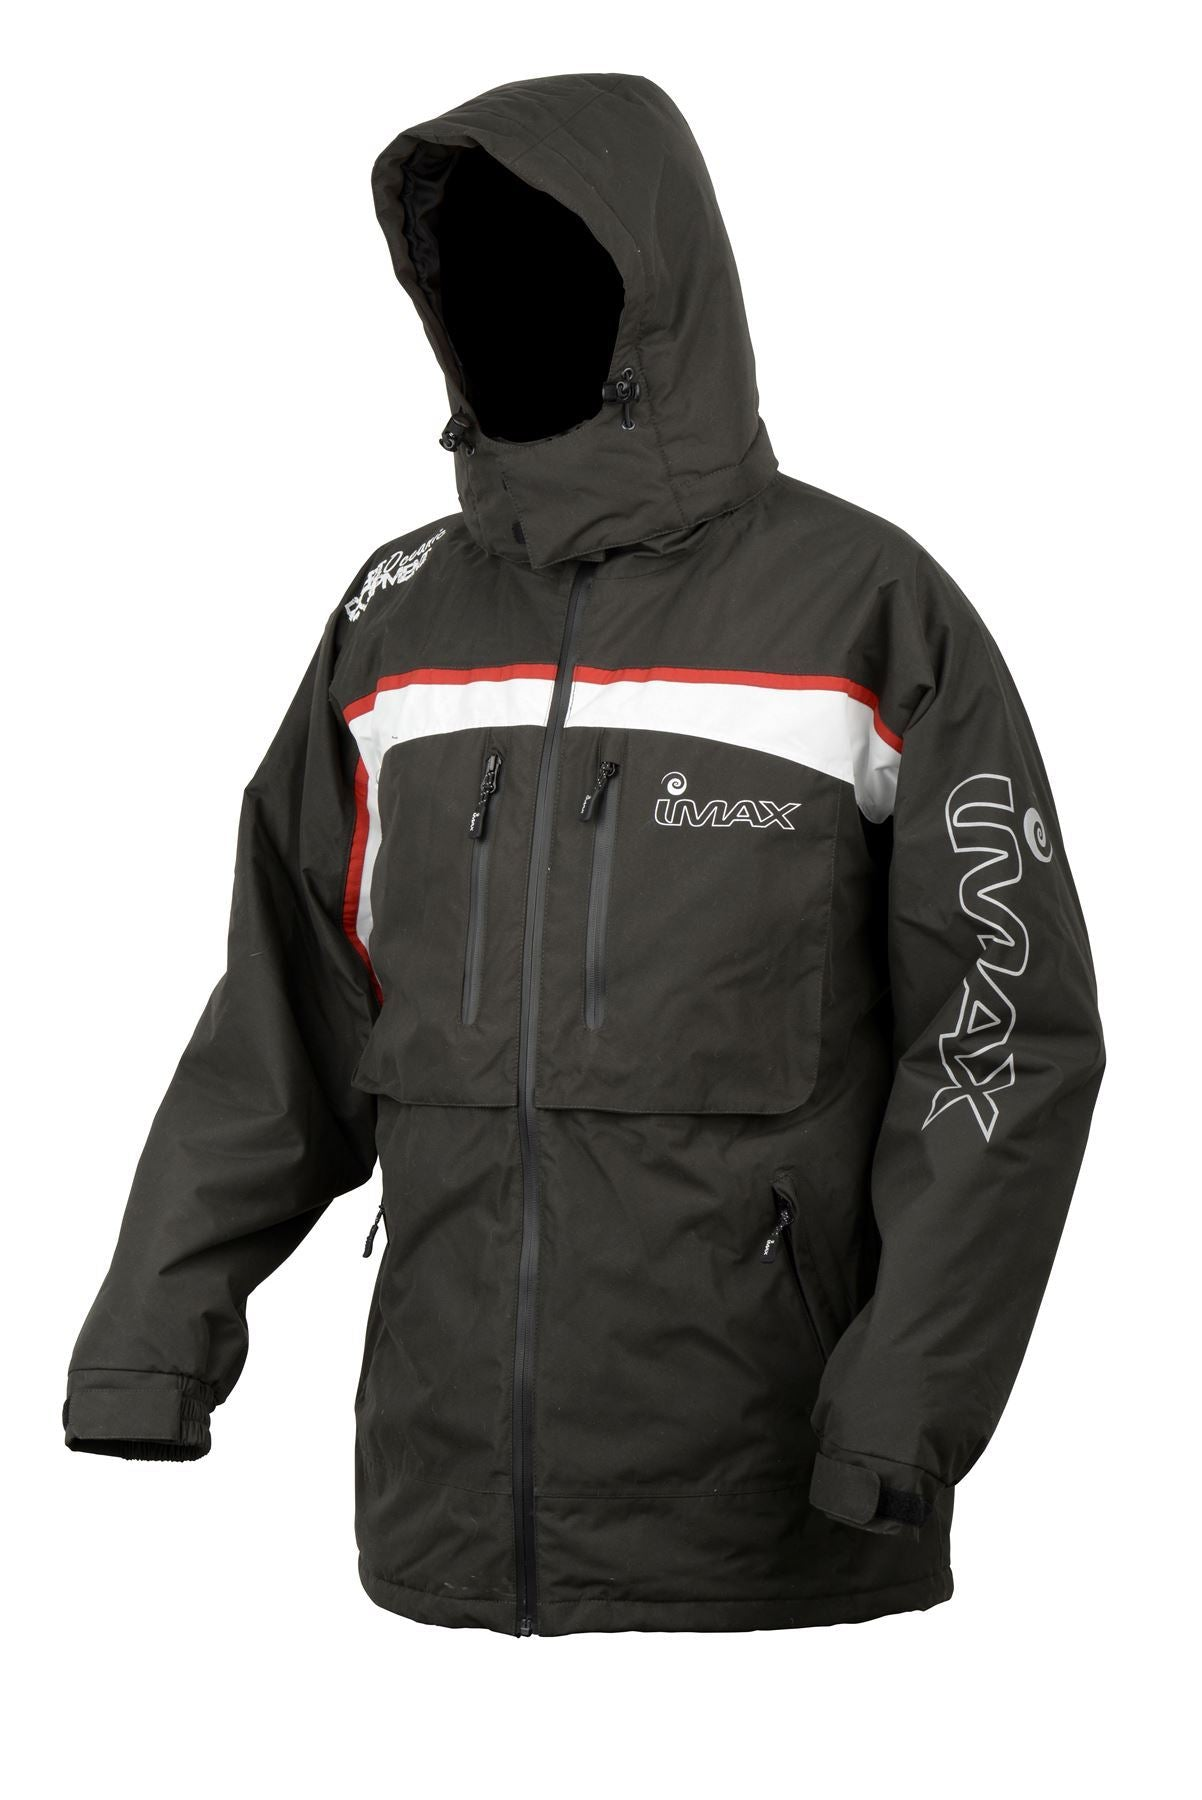 Imax Ocean Thermo Jacket Grey/Red - reid outdoors